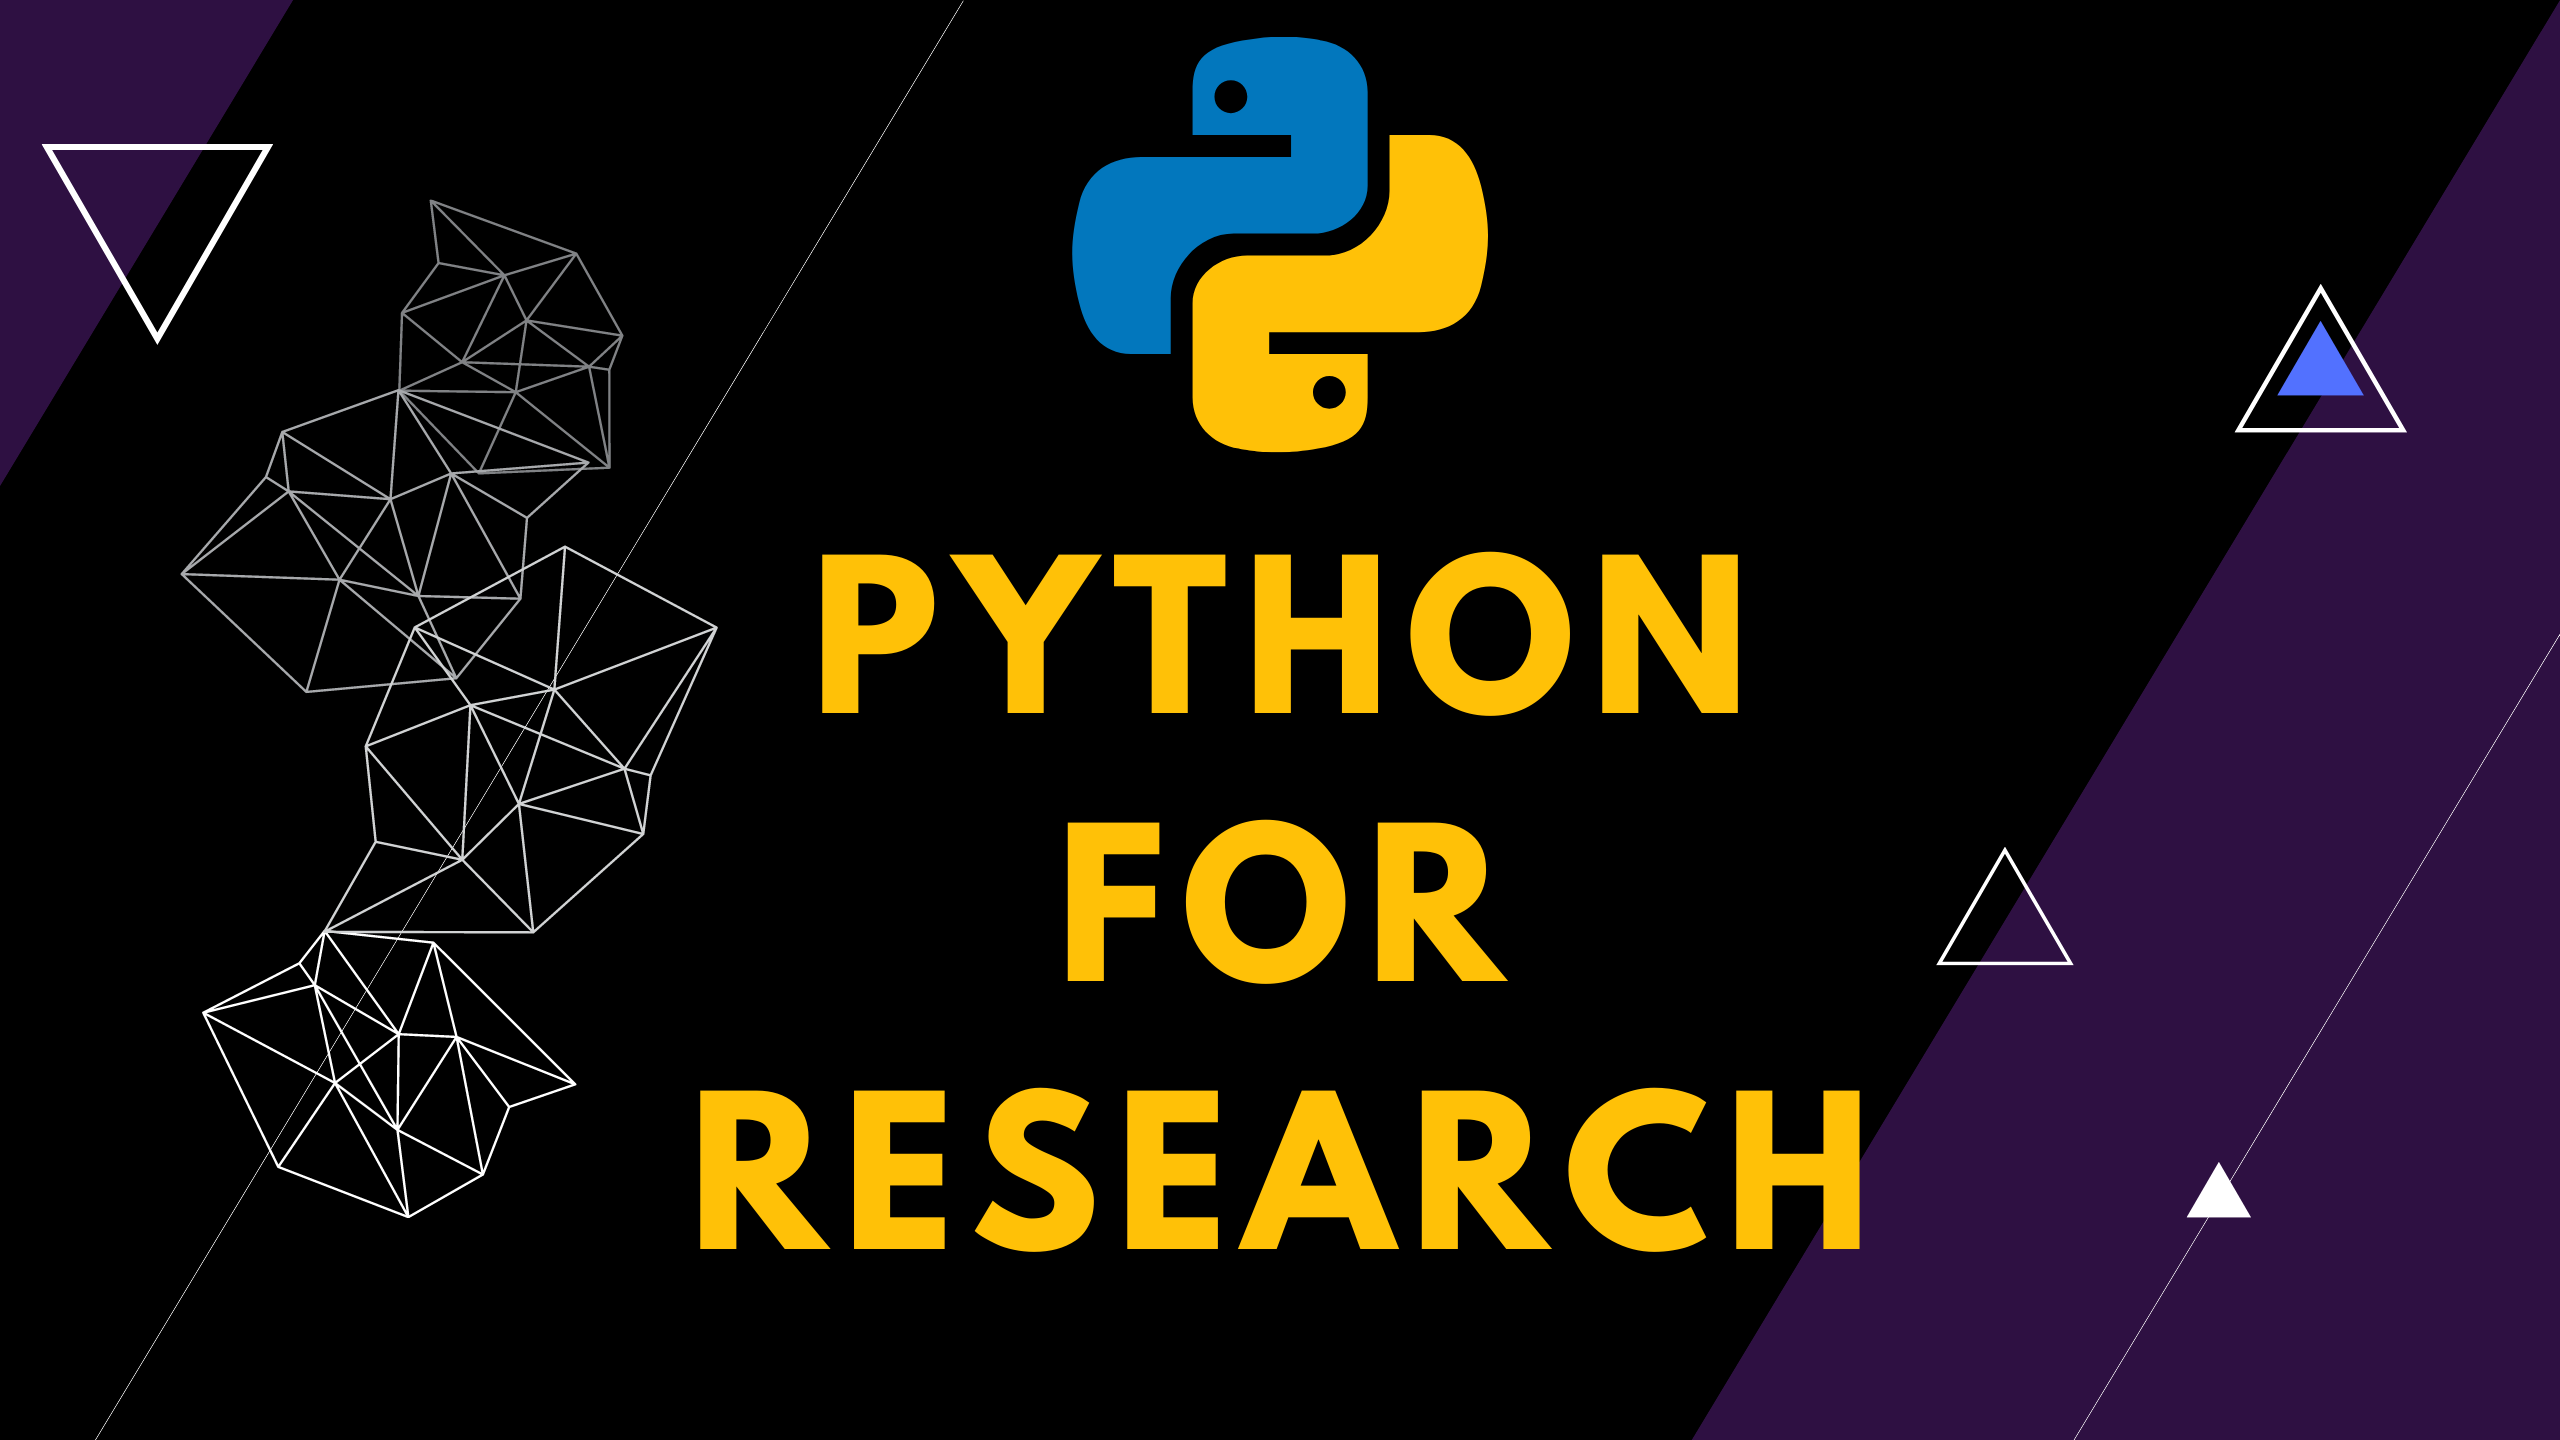 Python for Research